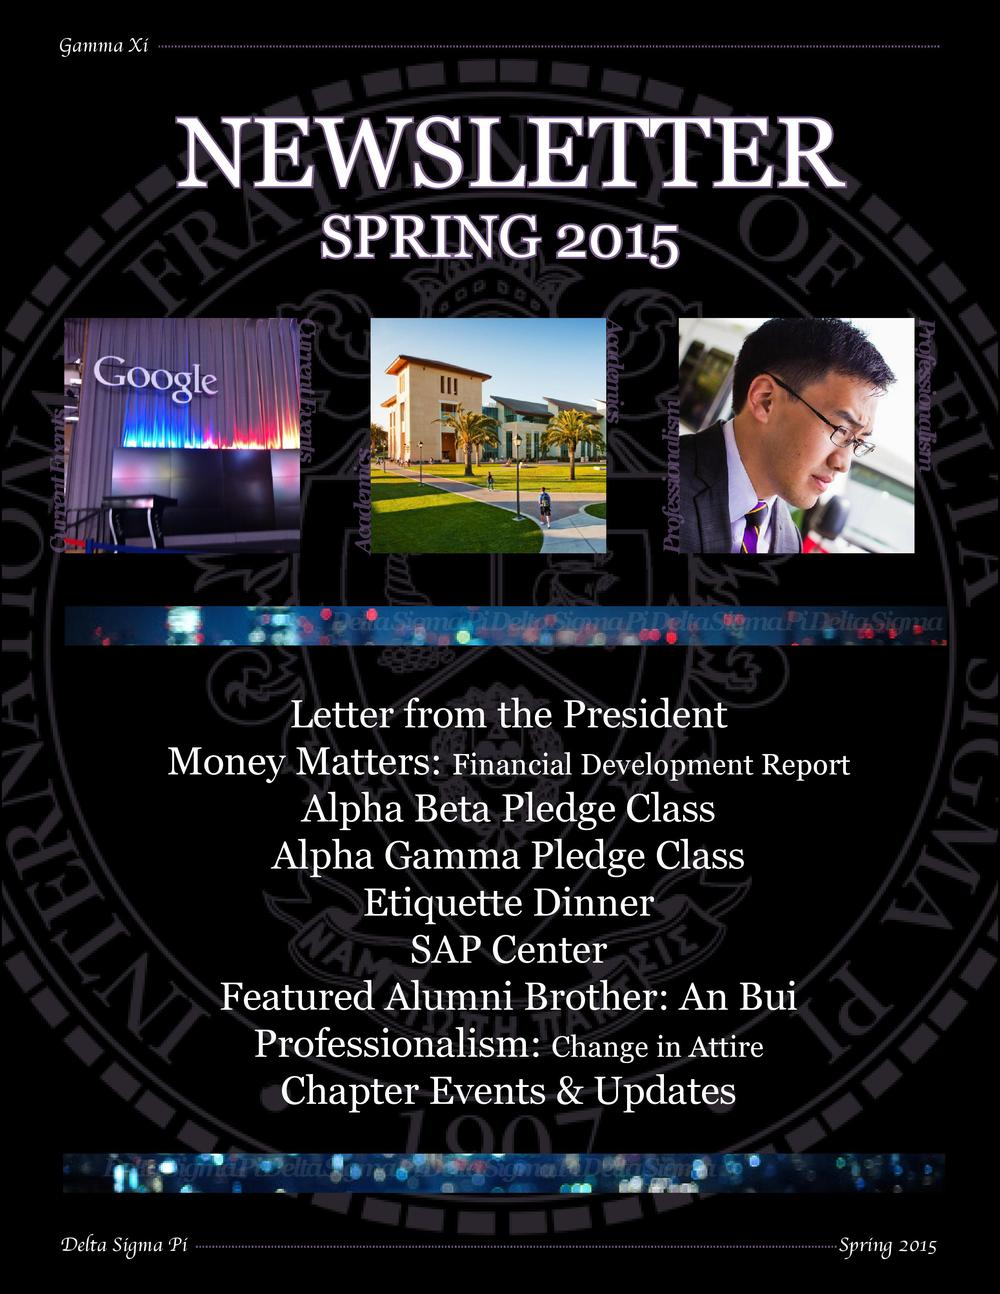 Newsletter+DSP+Gamma+Xi+2015+Spring+Final-page-001.jpg